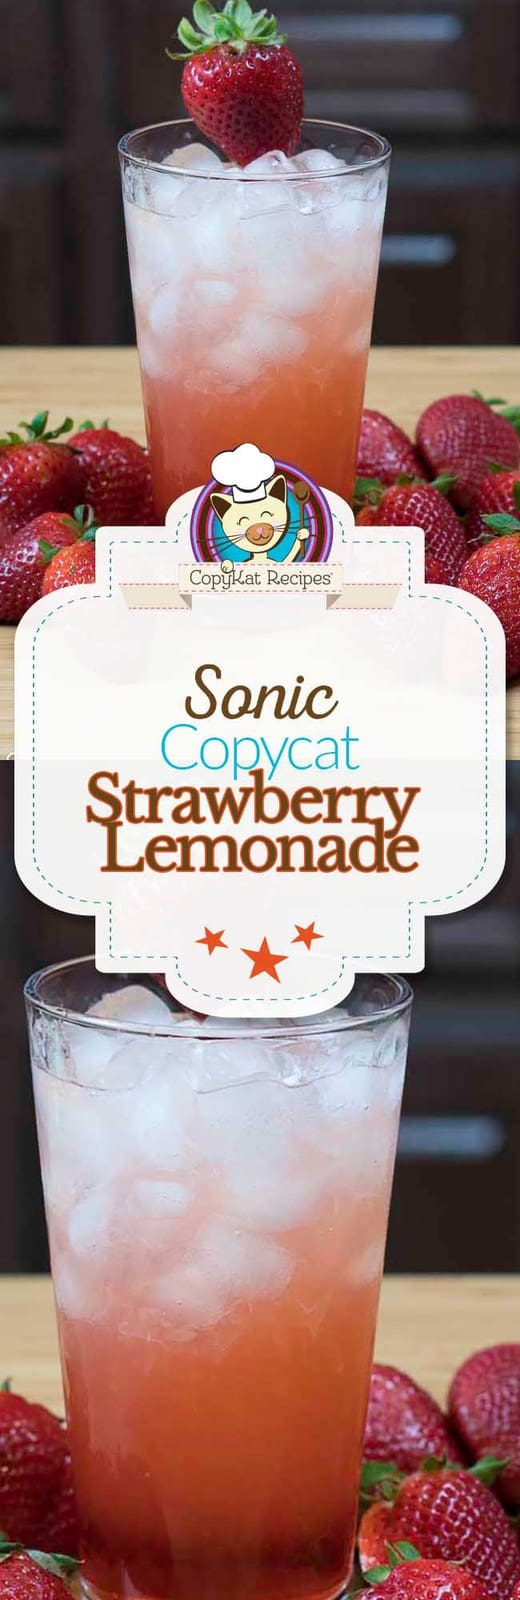 Make your own delicious copycat Strawberry Lemonade.  They are so easy to  make from scratch.